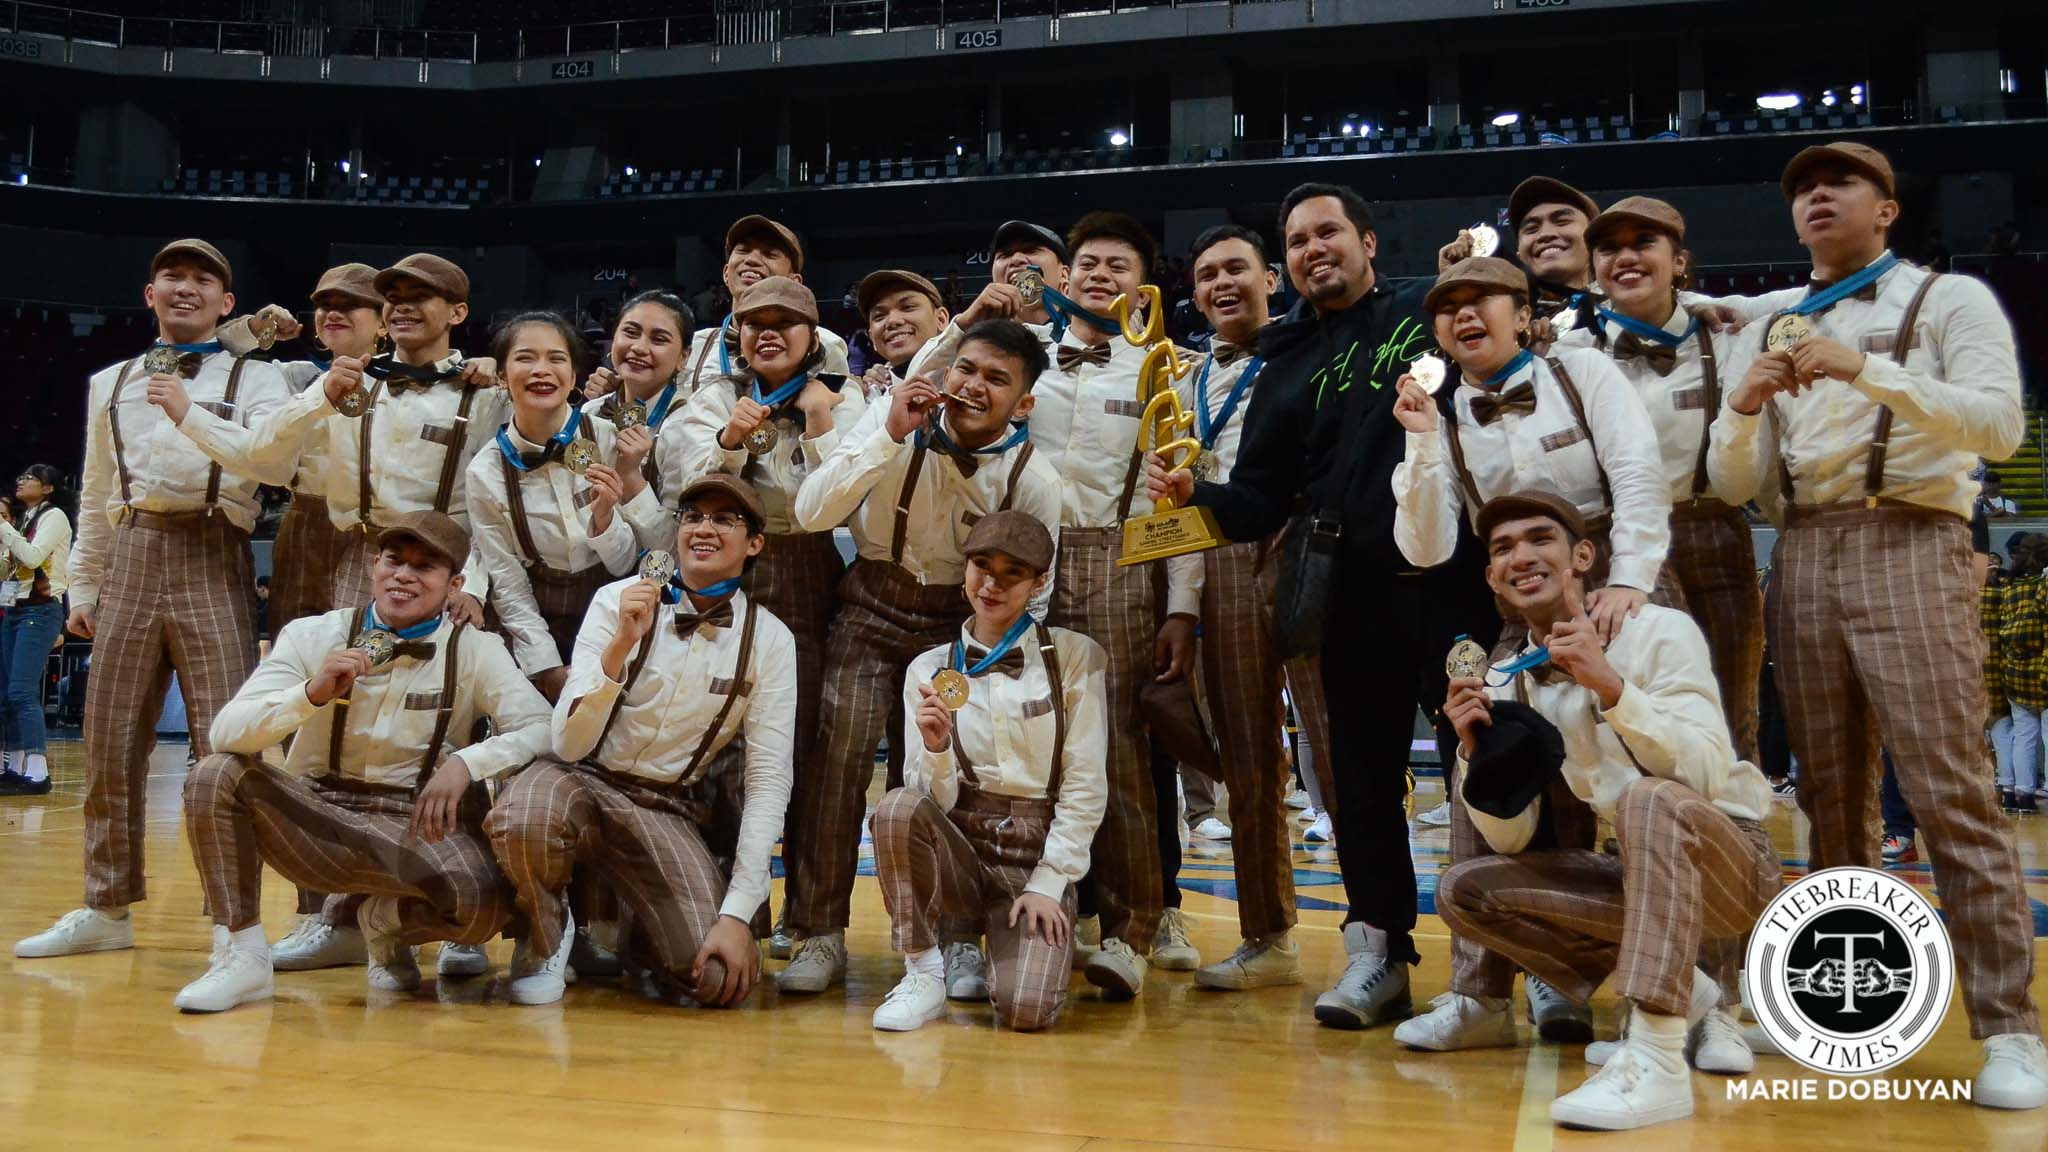 Tiebreaker Times Mad rush to complete routine pays off for FEU Street Alliance FEU News Streetdance UAAP  UAAP Season 80 Streetdance Competition UAAP Season 80 Rei Sioson Randell San Gregorio FEU Street Alliance